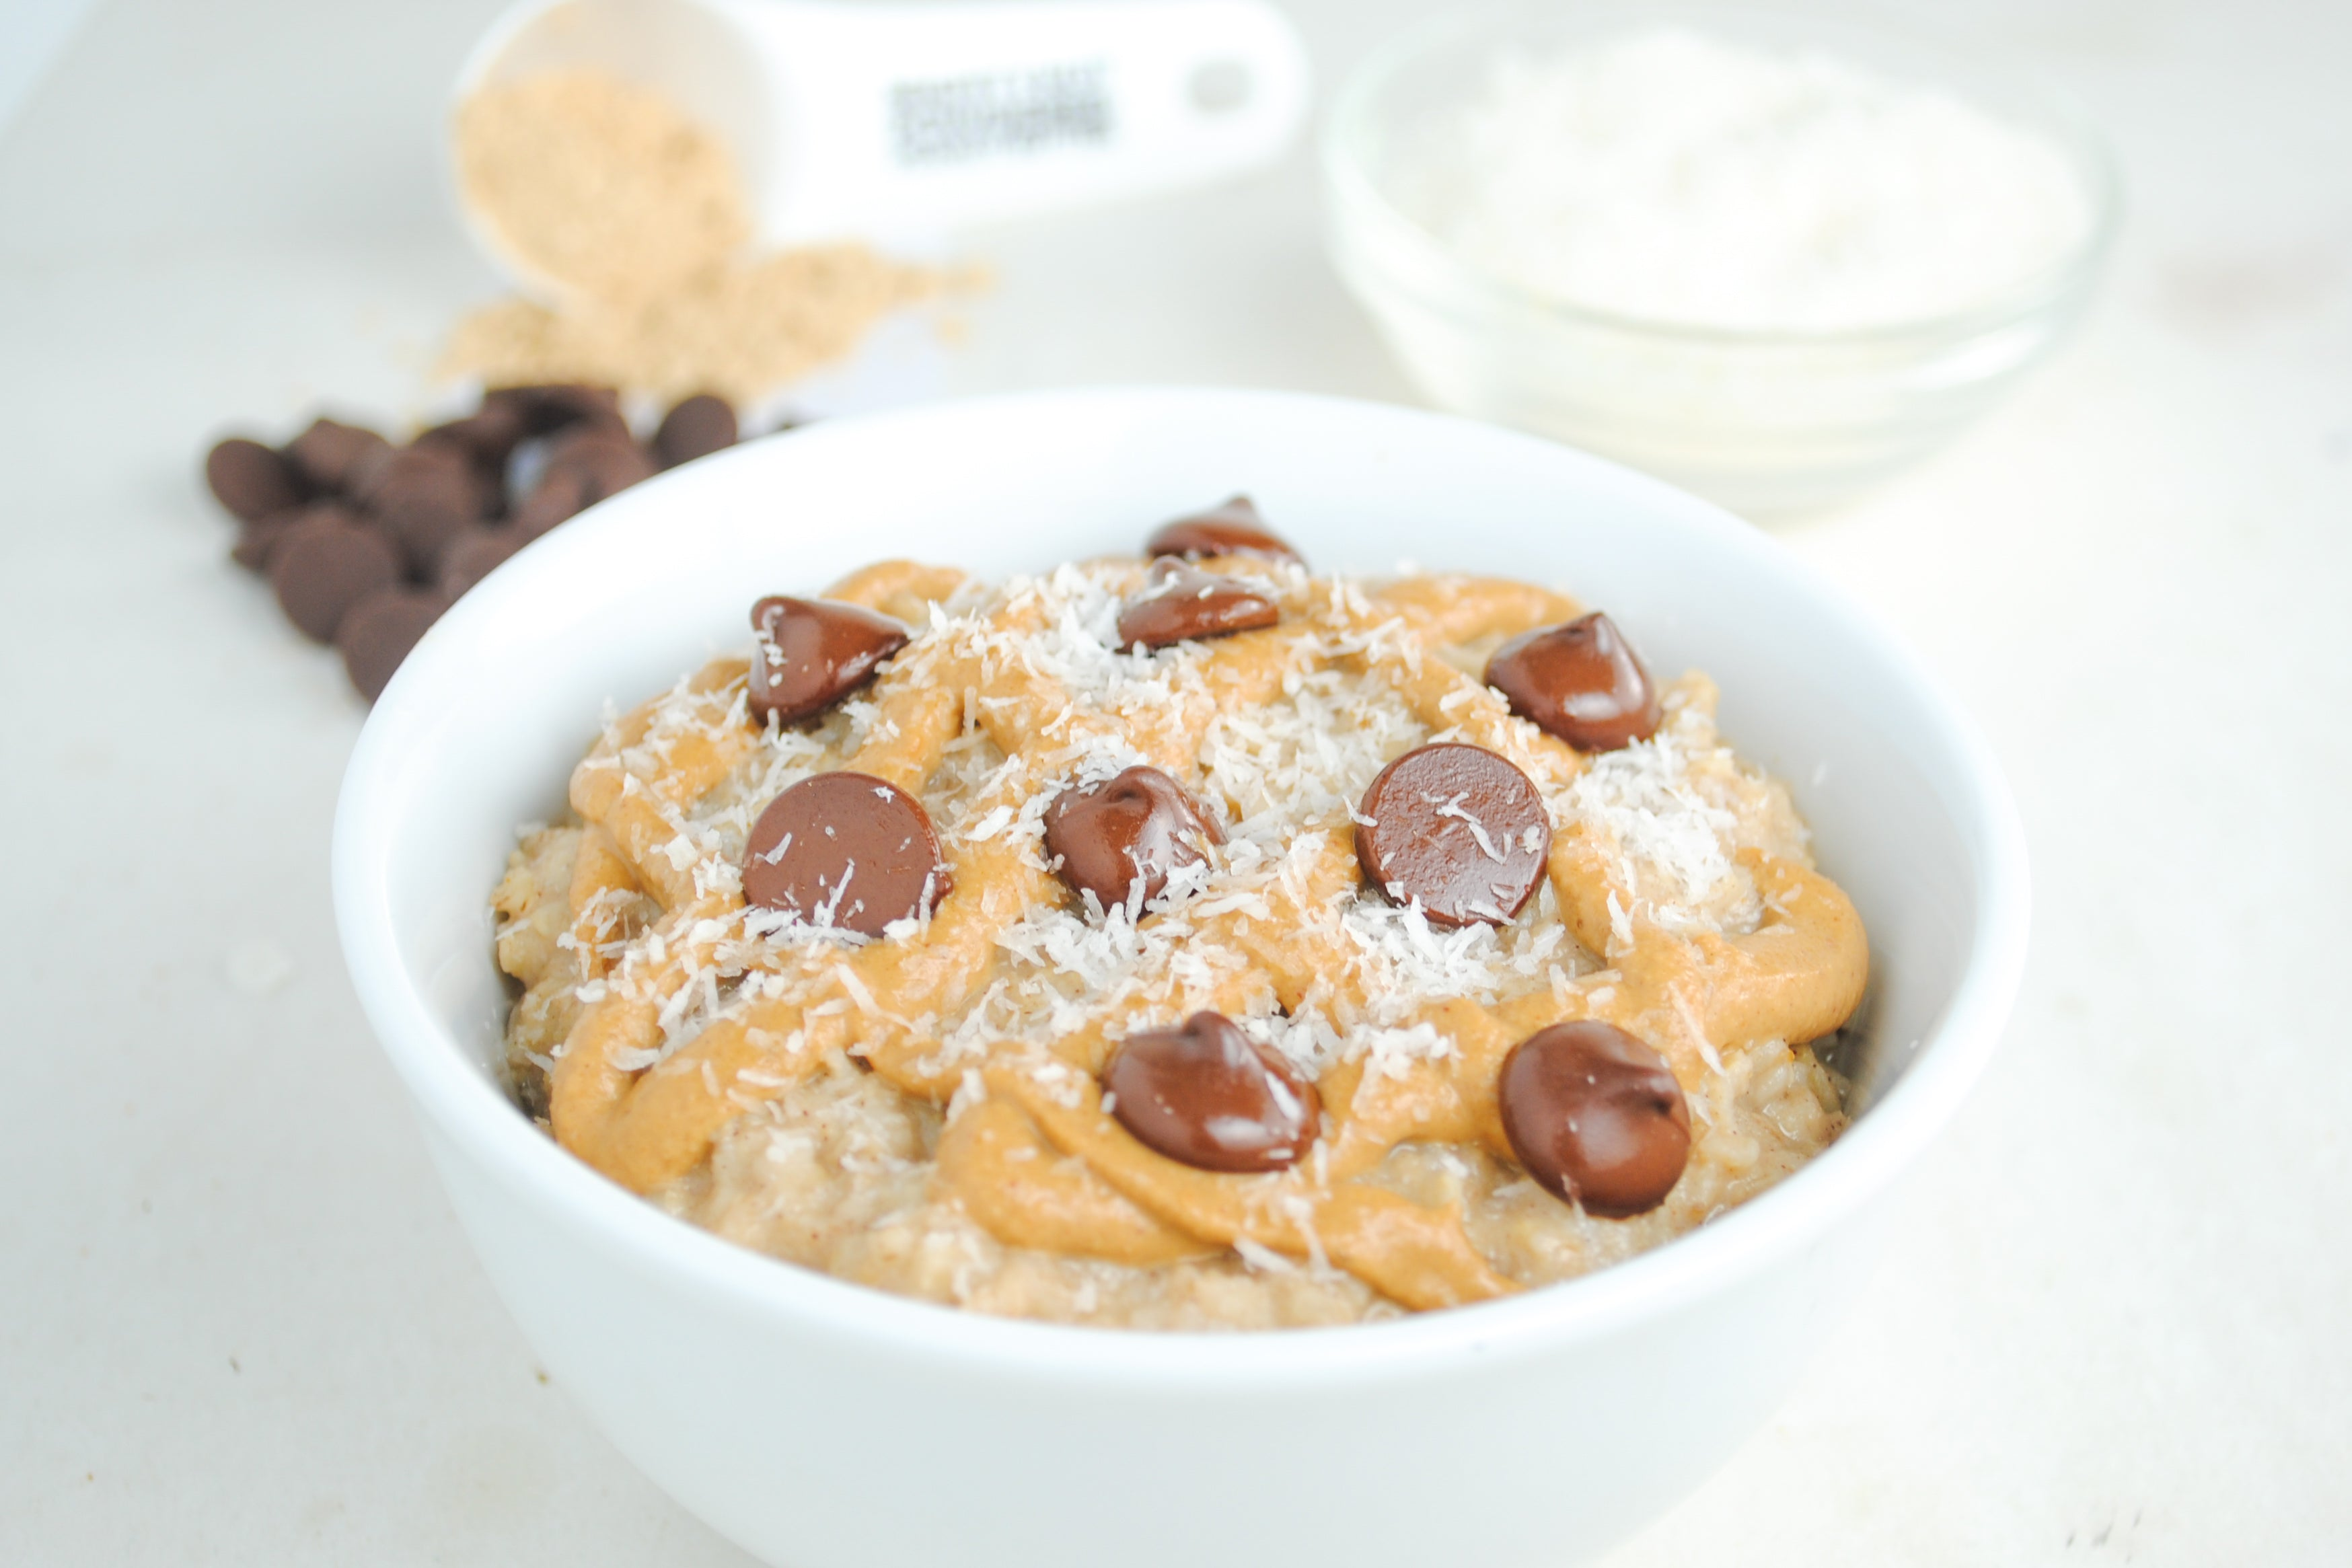 Coconut Peanut Butter Chocolate Chip Oatmeal